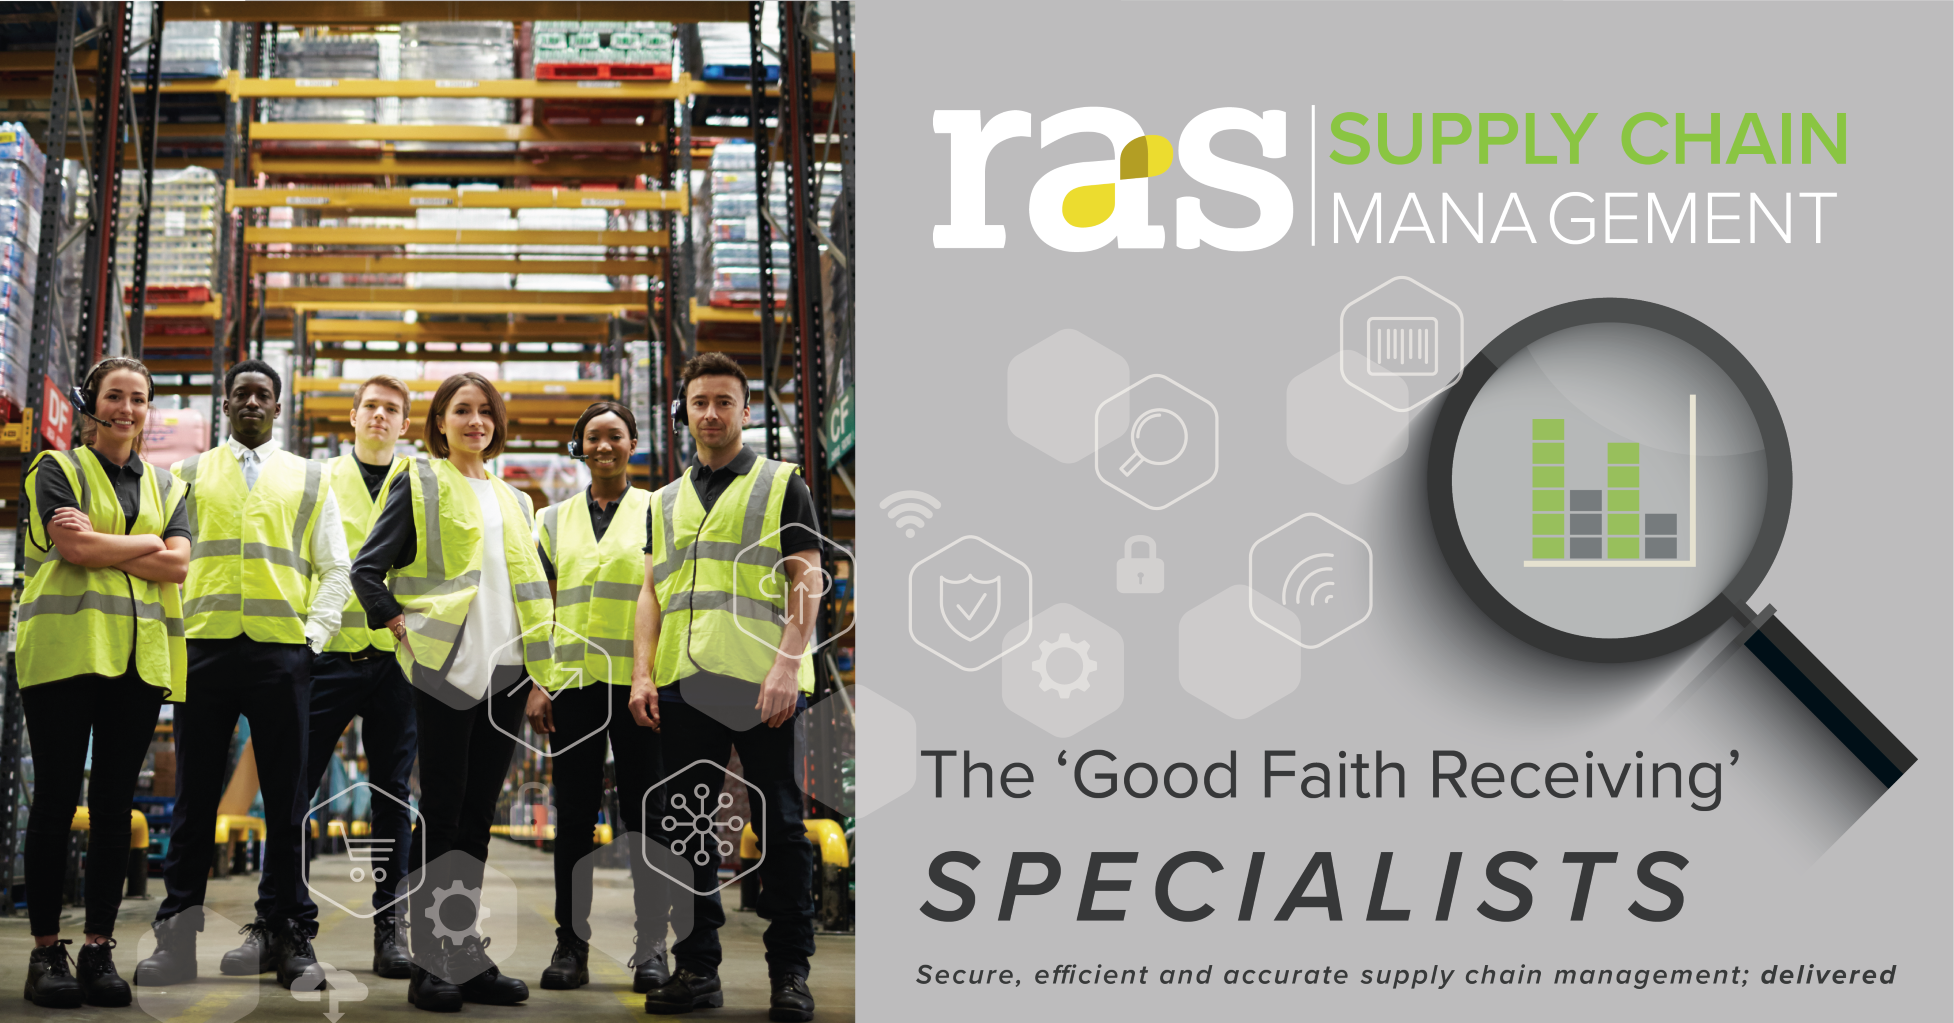 RAS supply chain management specialists are secure, efficient and accurate.